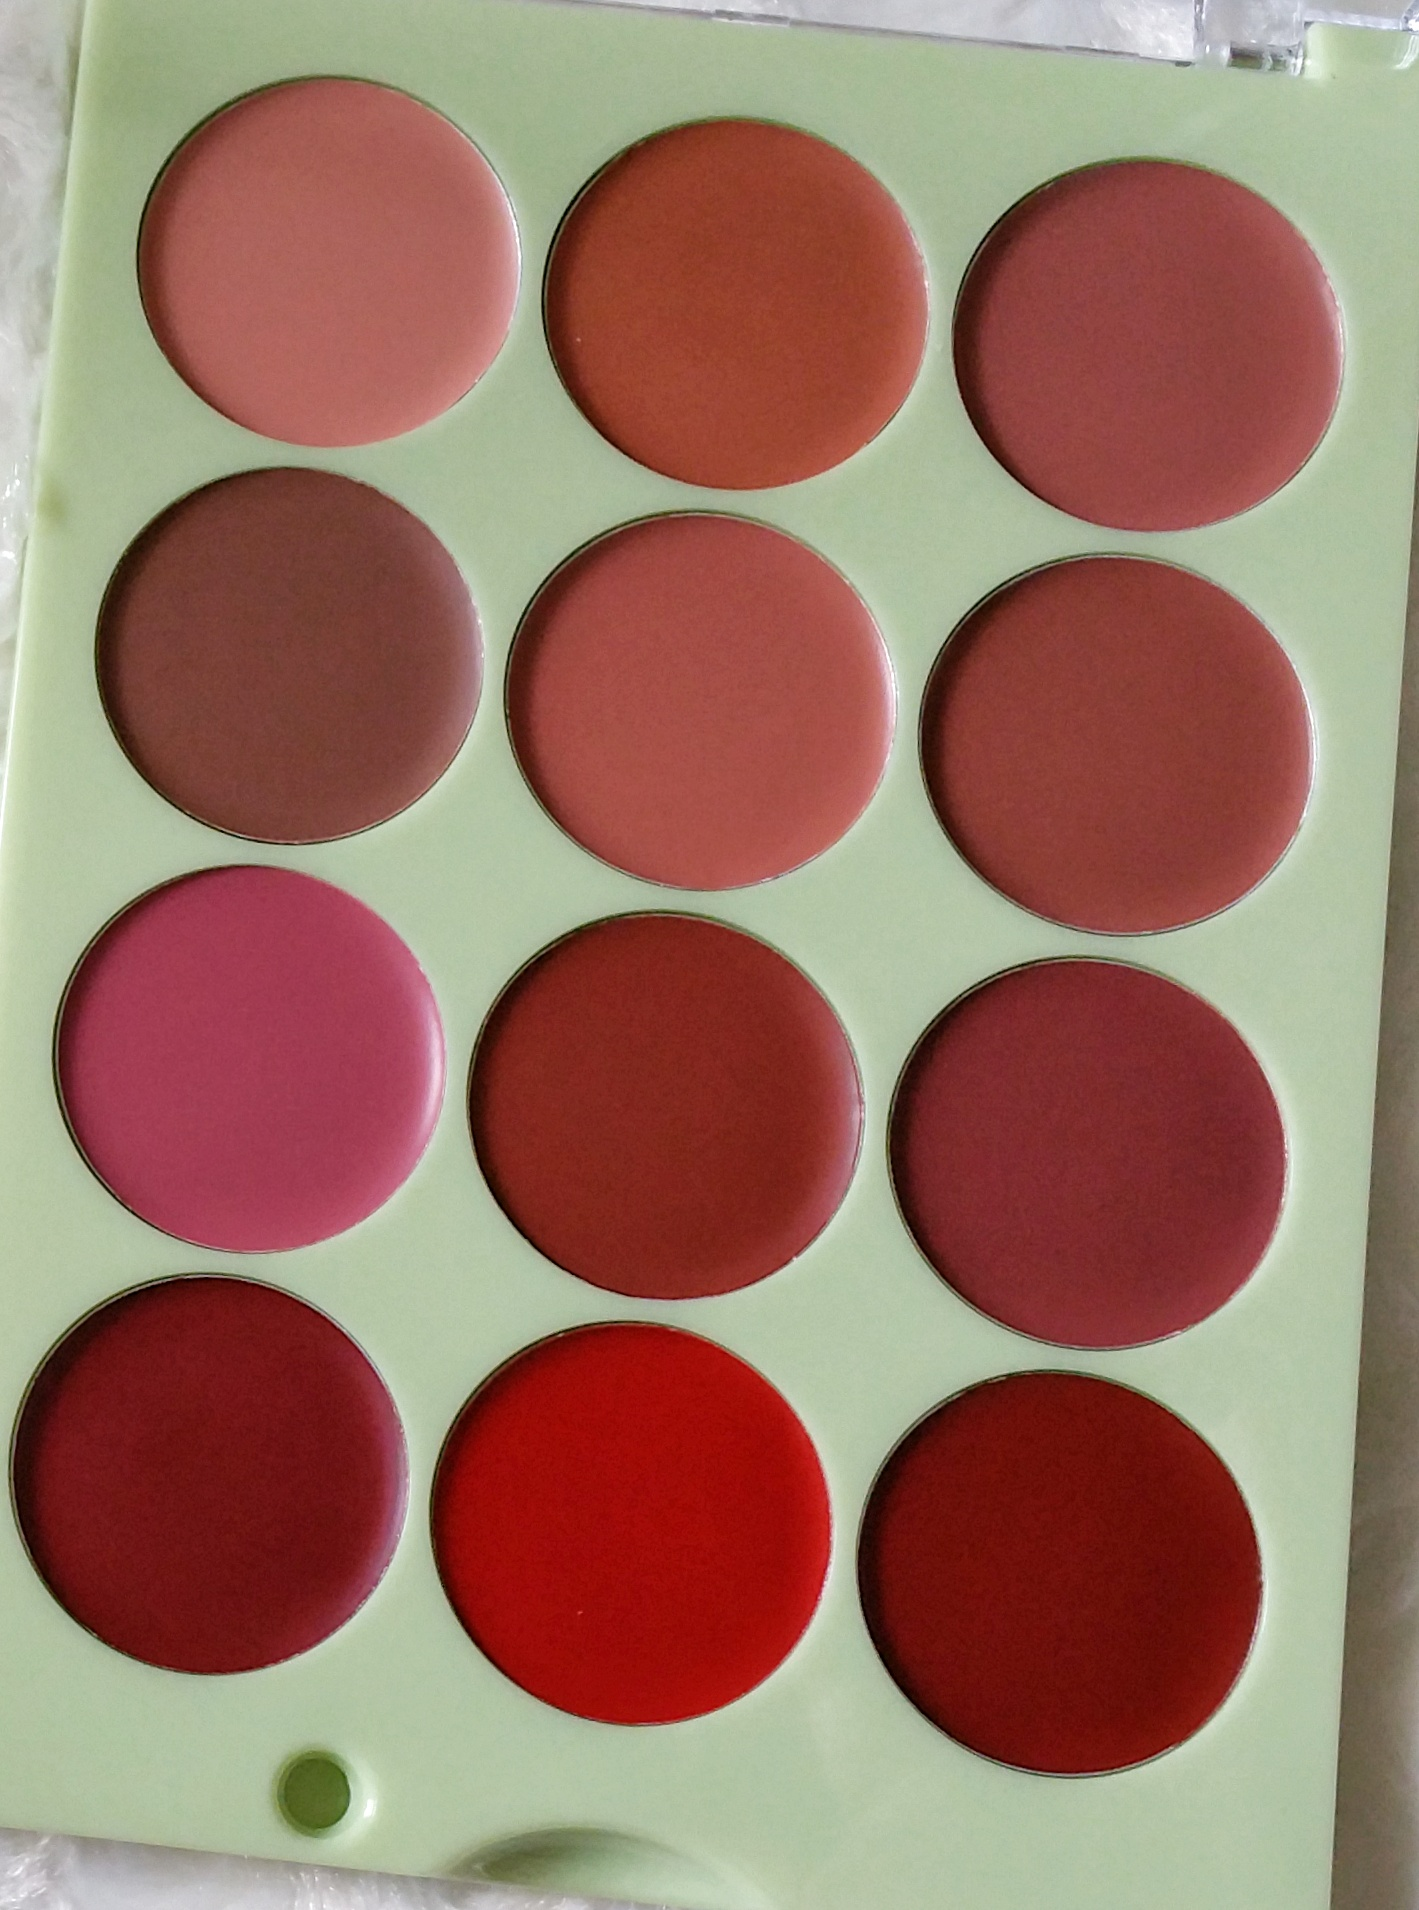 It's Judy Time, It's Eye Time, It's Lip Time, makeup palette, lip palette, eye shadow palette, Pixi Beauty, Pixi, eye shadow, lips, lipstick, lip color, eye color, eye shadow shades, swatches, makeup, beauty,